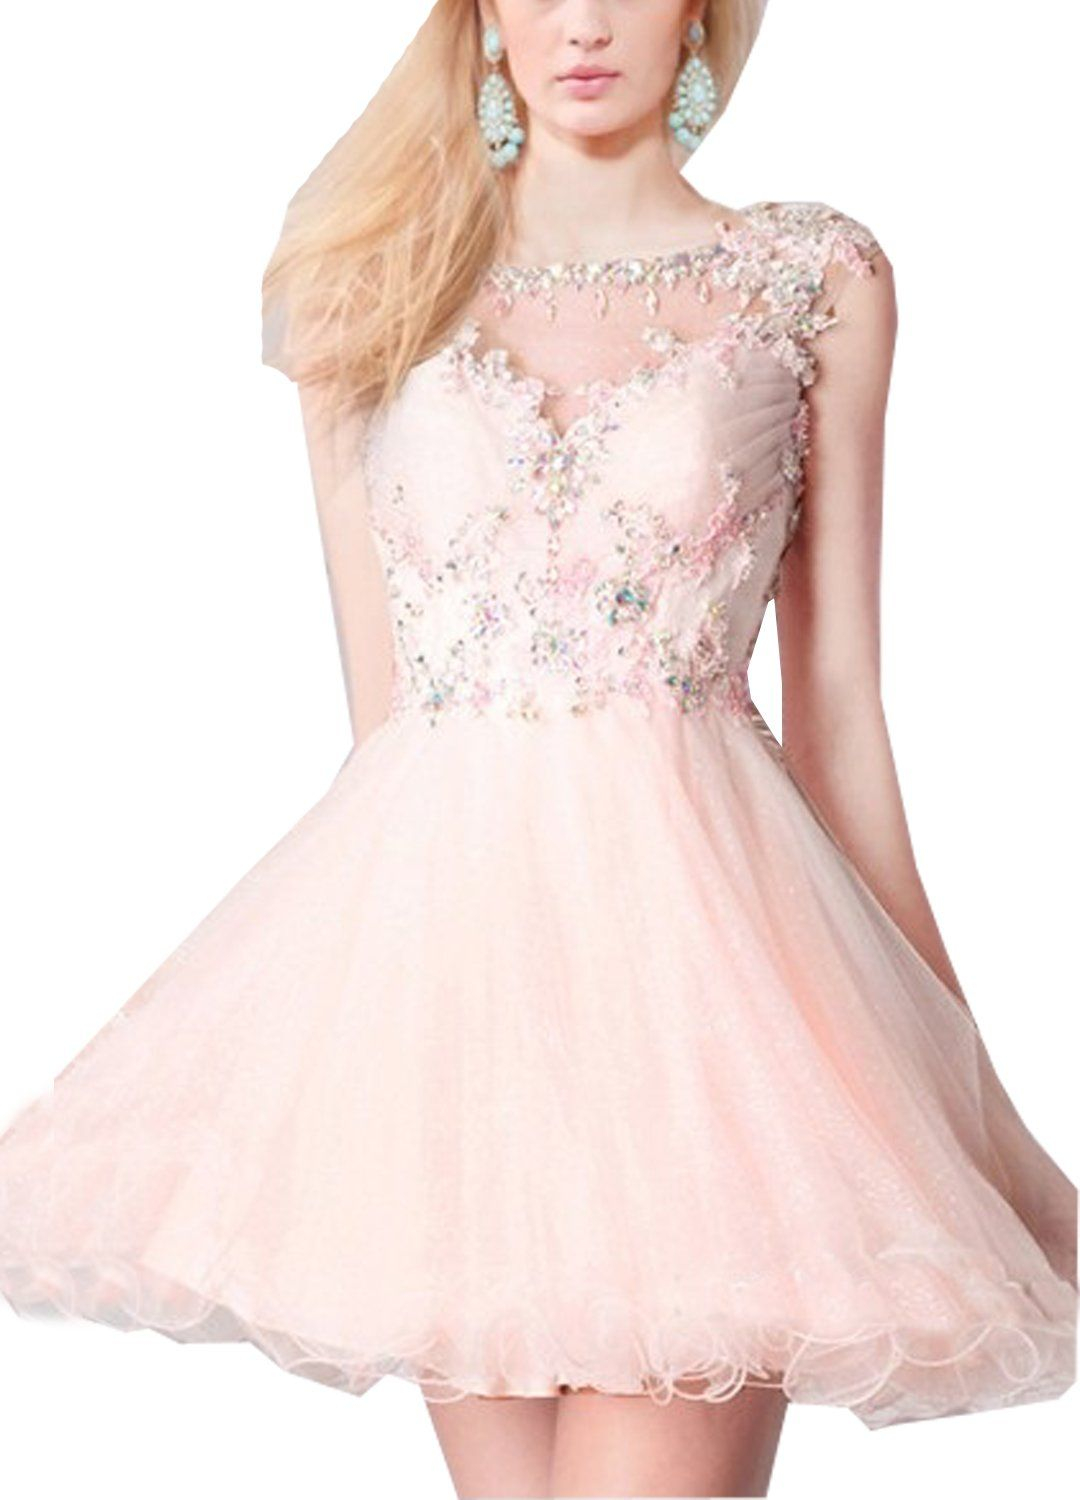 Lorderqueen womenus beaded lace applique cap sleeves pink short prom